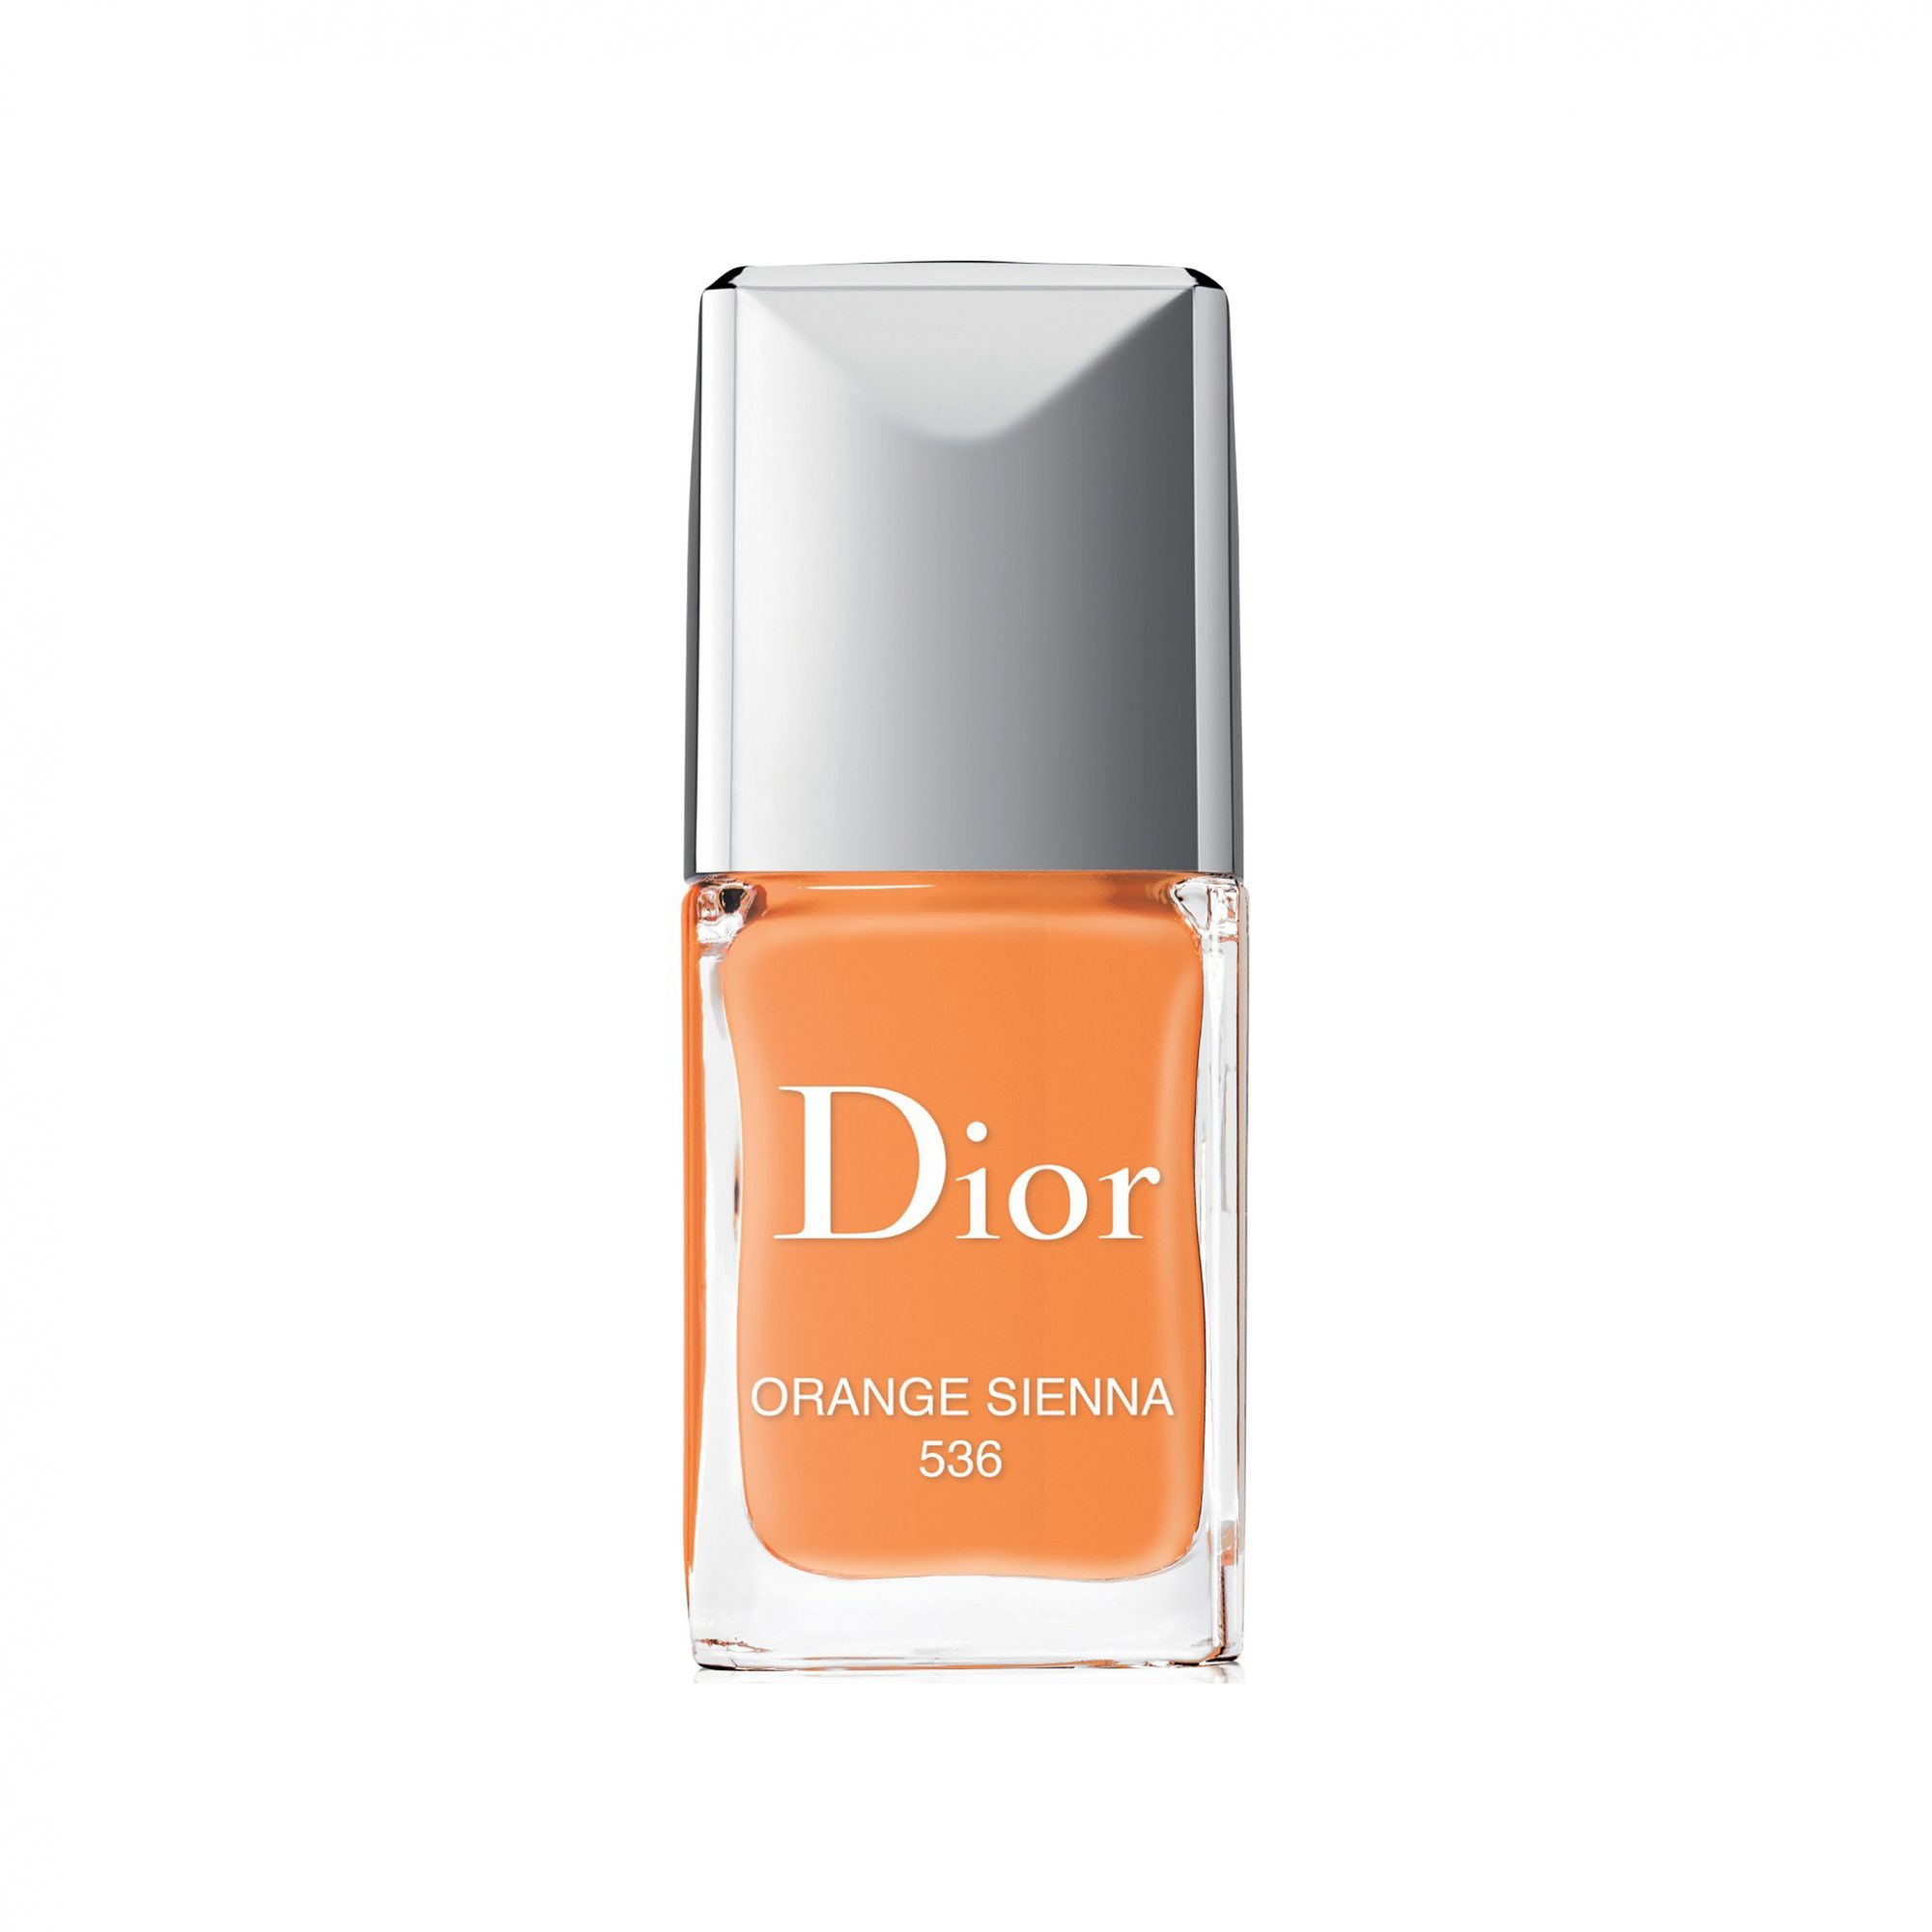 Dior Vernis Nail Lacquer Orange Sienna